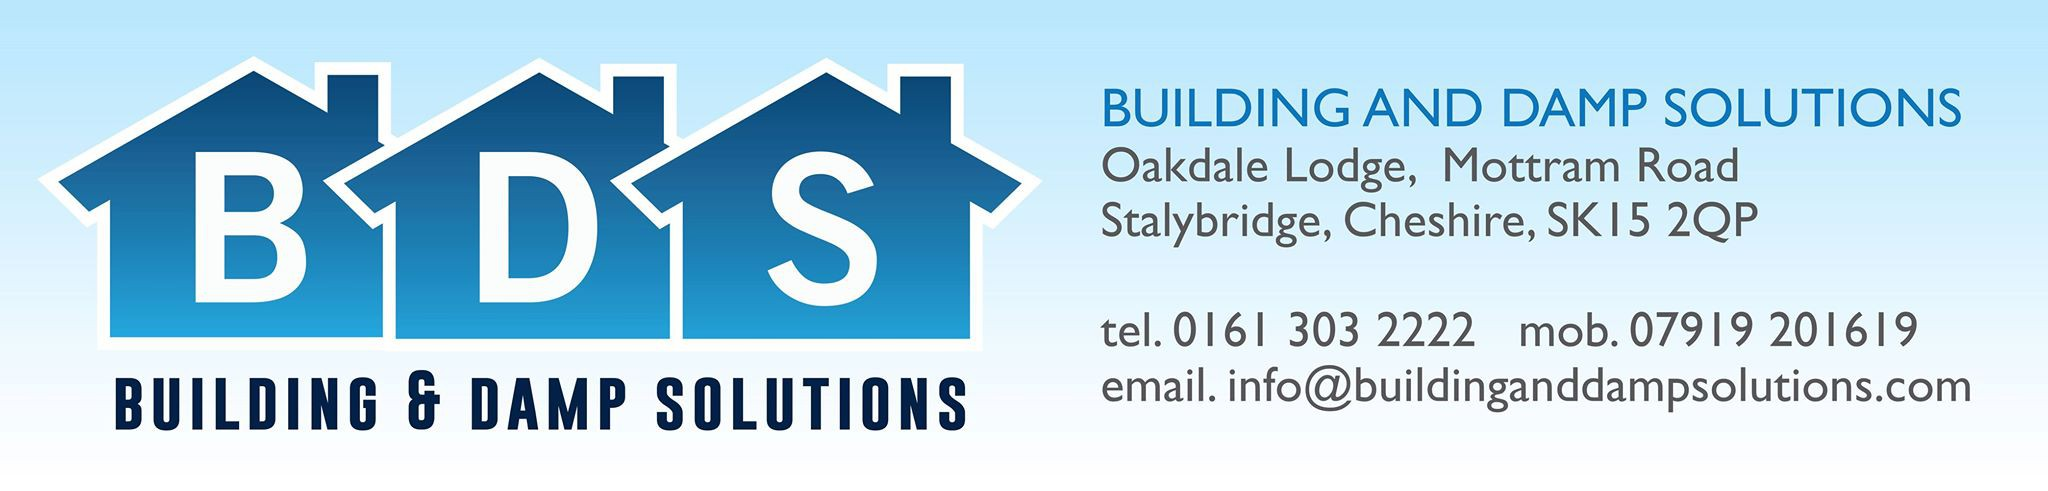 Building & Damp Solutions Ltd